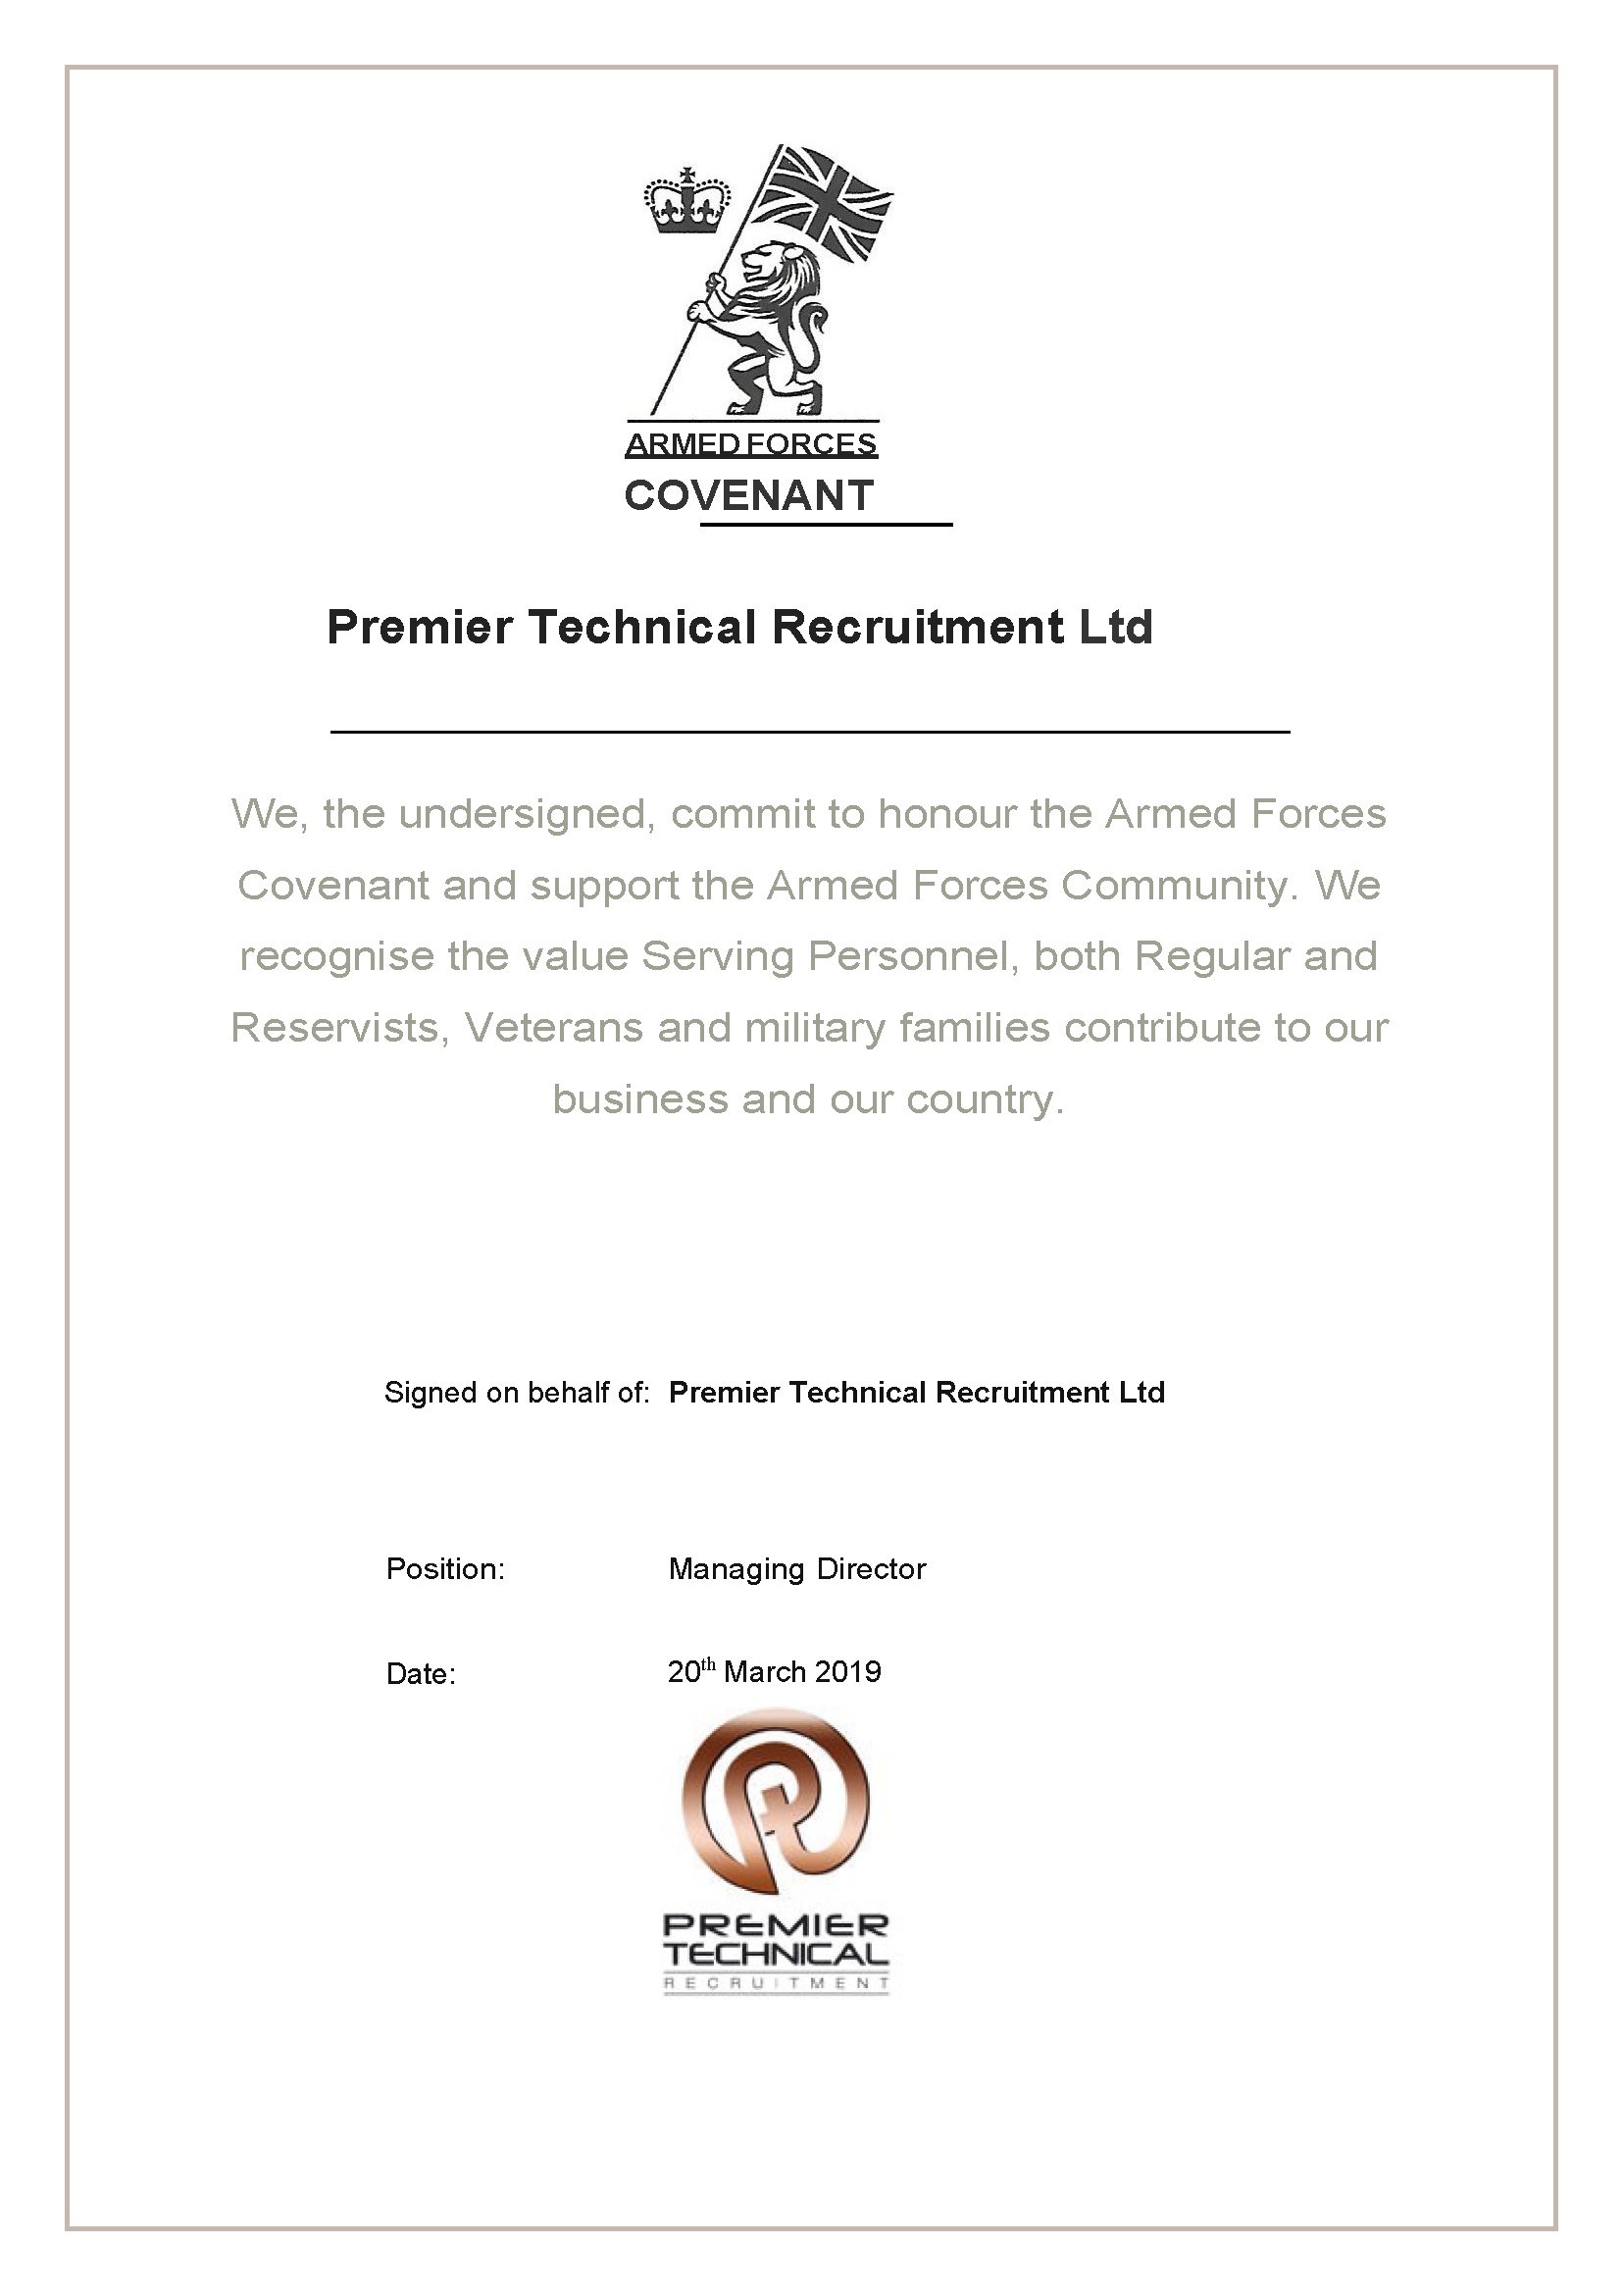 Premier Technical Recruitment Ltd Armed Forces Covenant Page 1